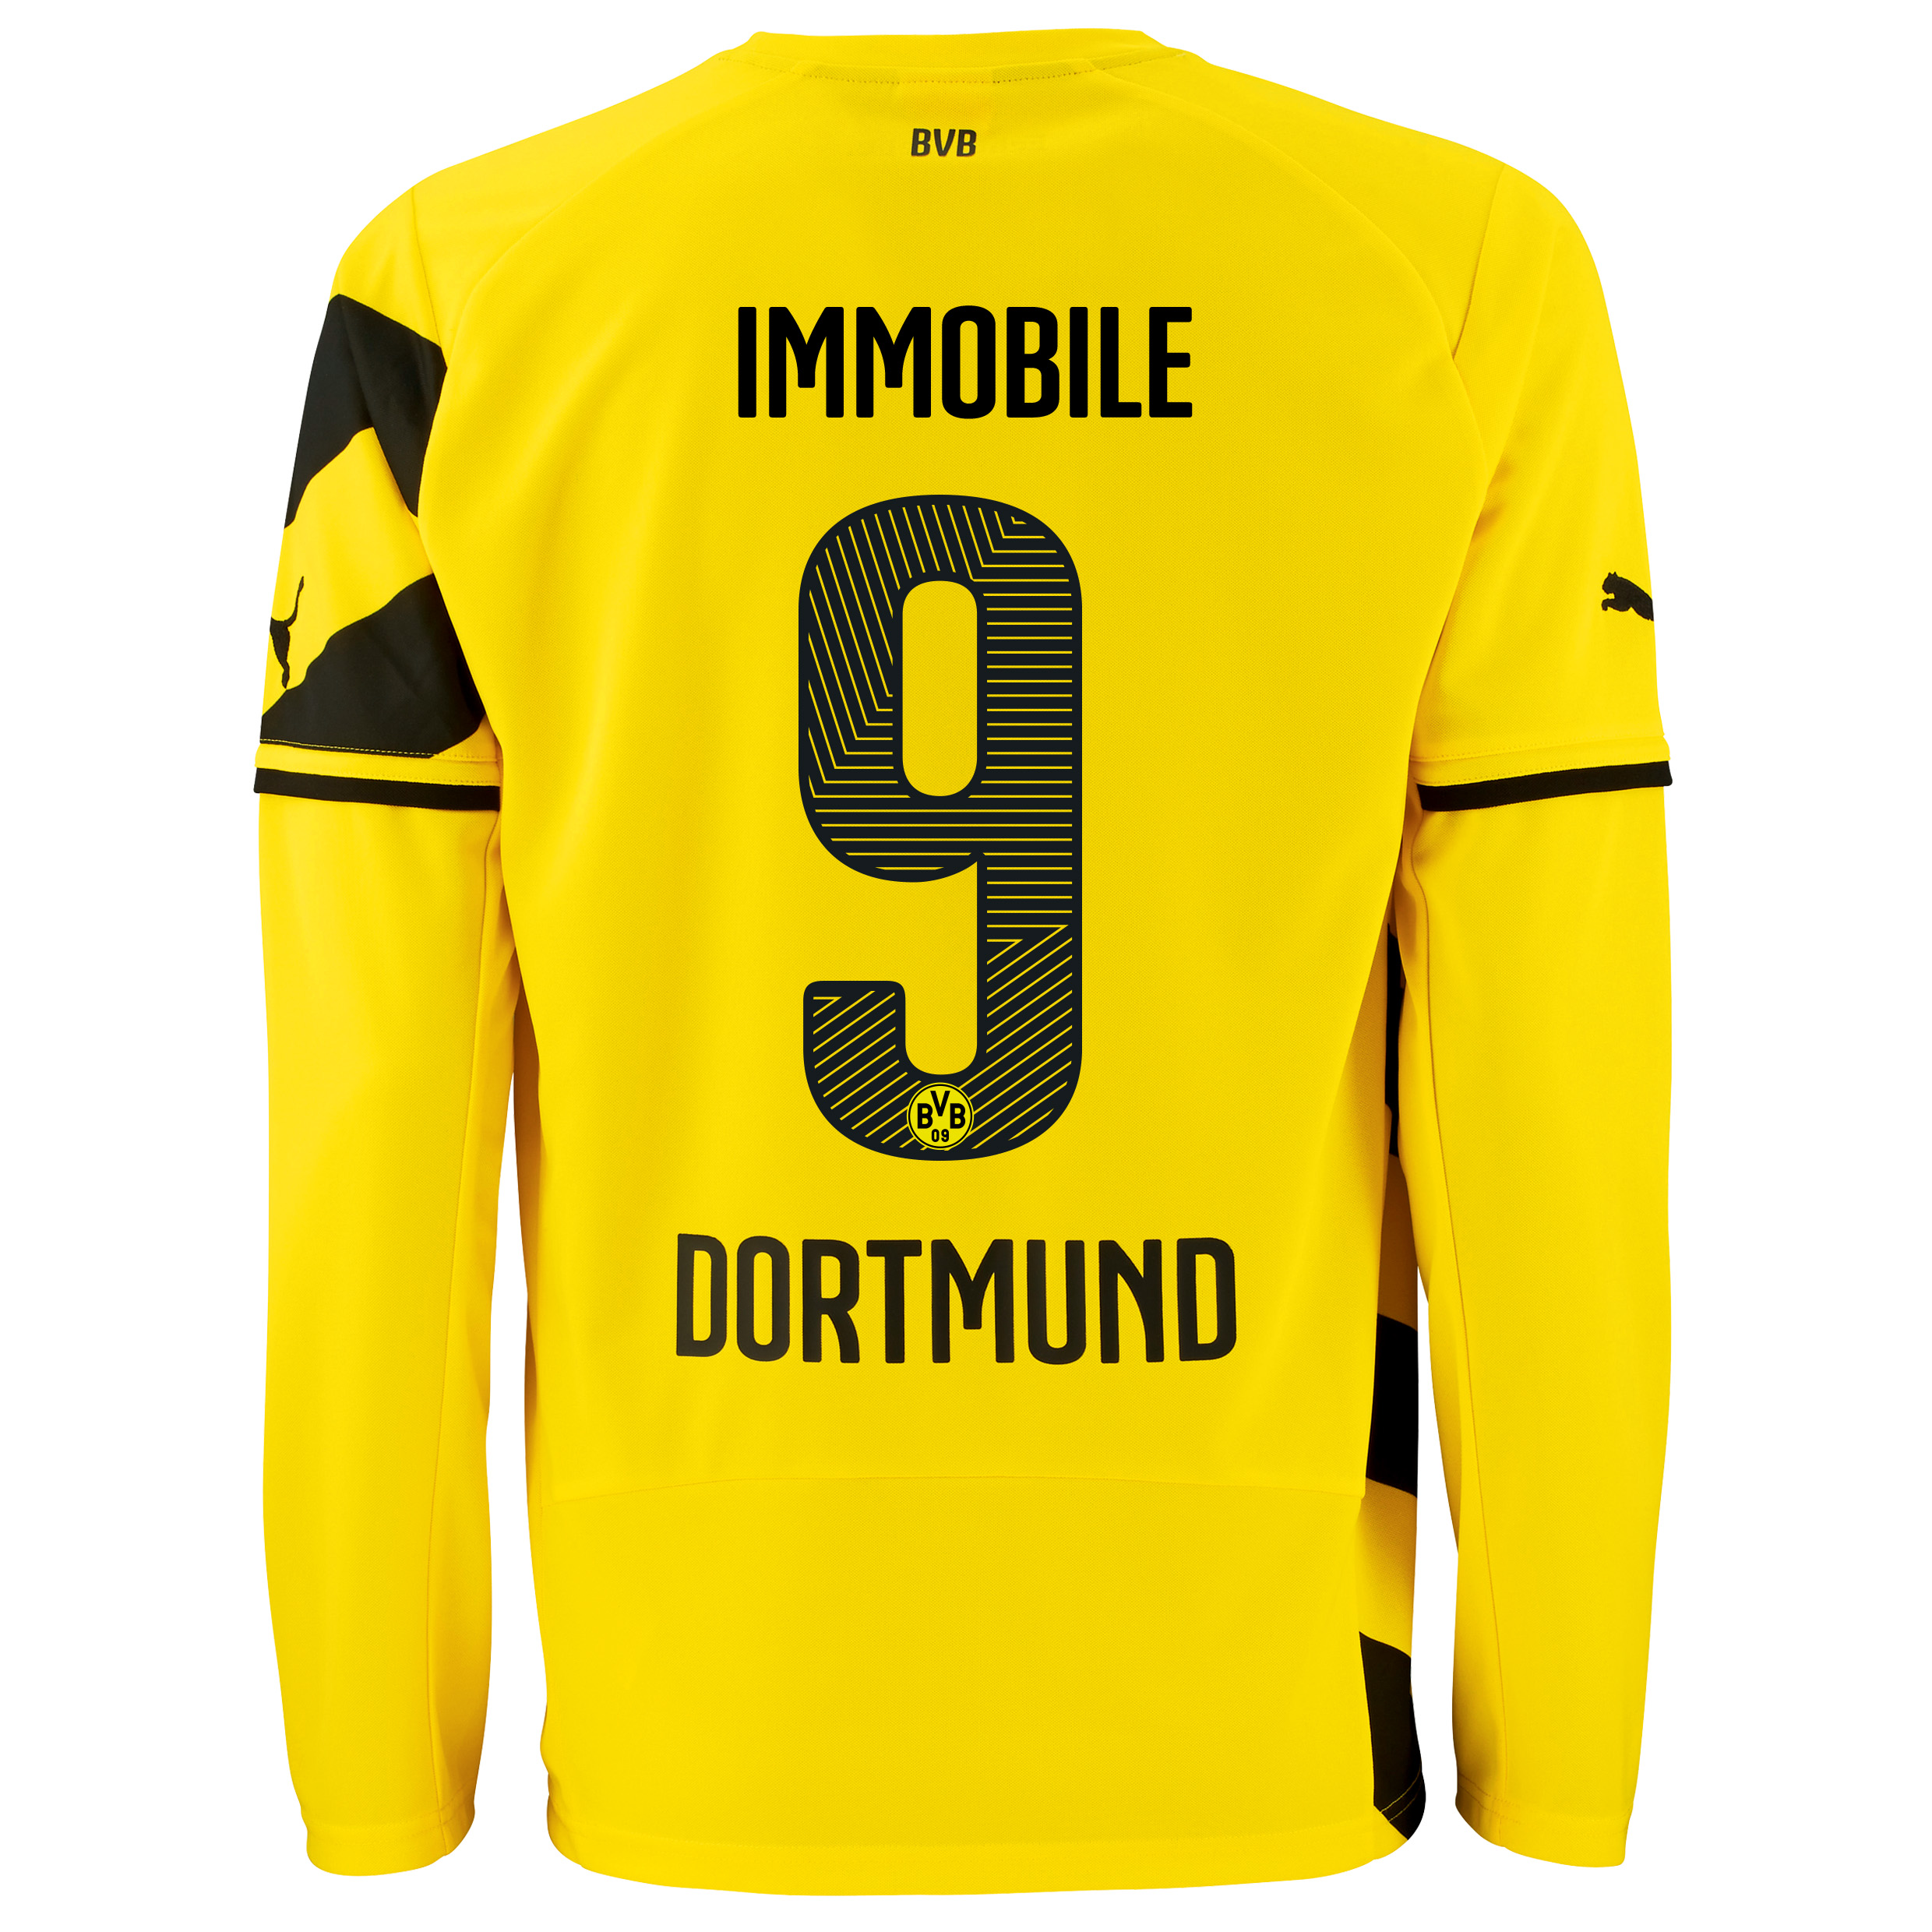 BVB Home Shirt 2014/15 - Long Sleeve - Kids Yellow with Ciro Immobile 9 printing